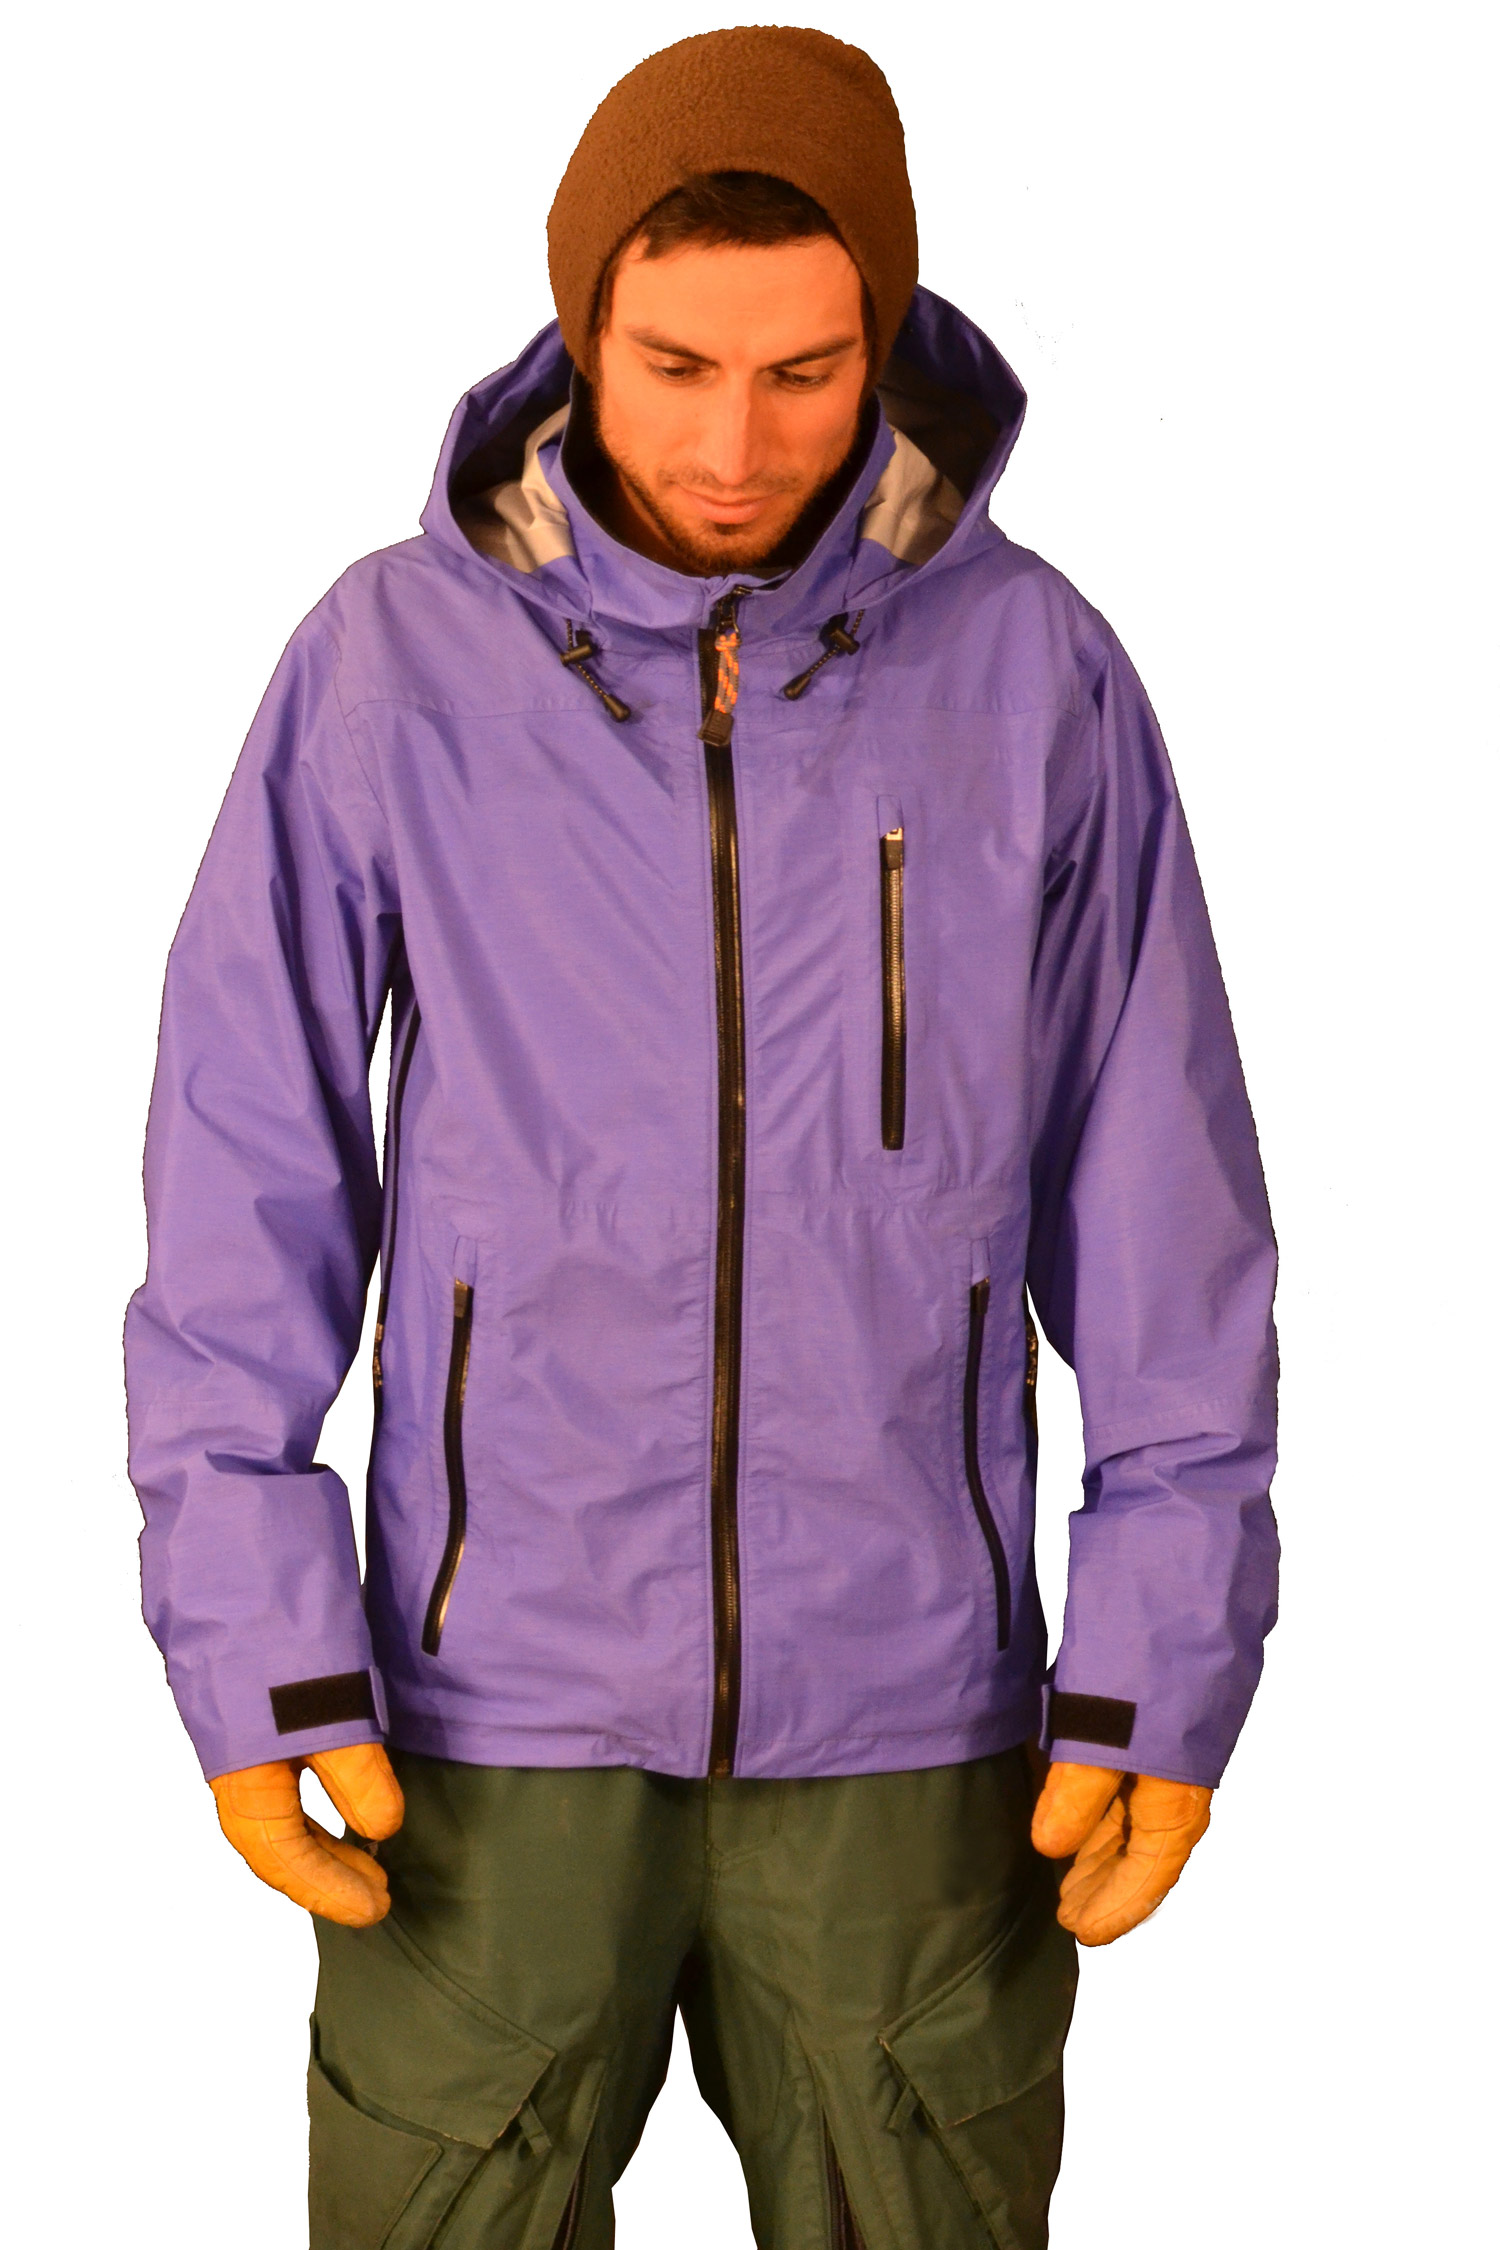 Ambit-Purple-JacketSample-FrontFullBody.jpg